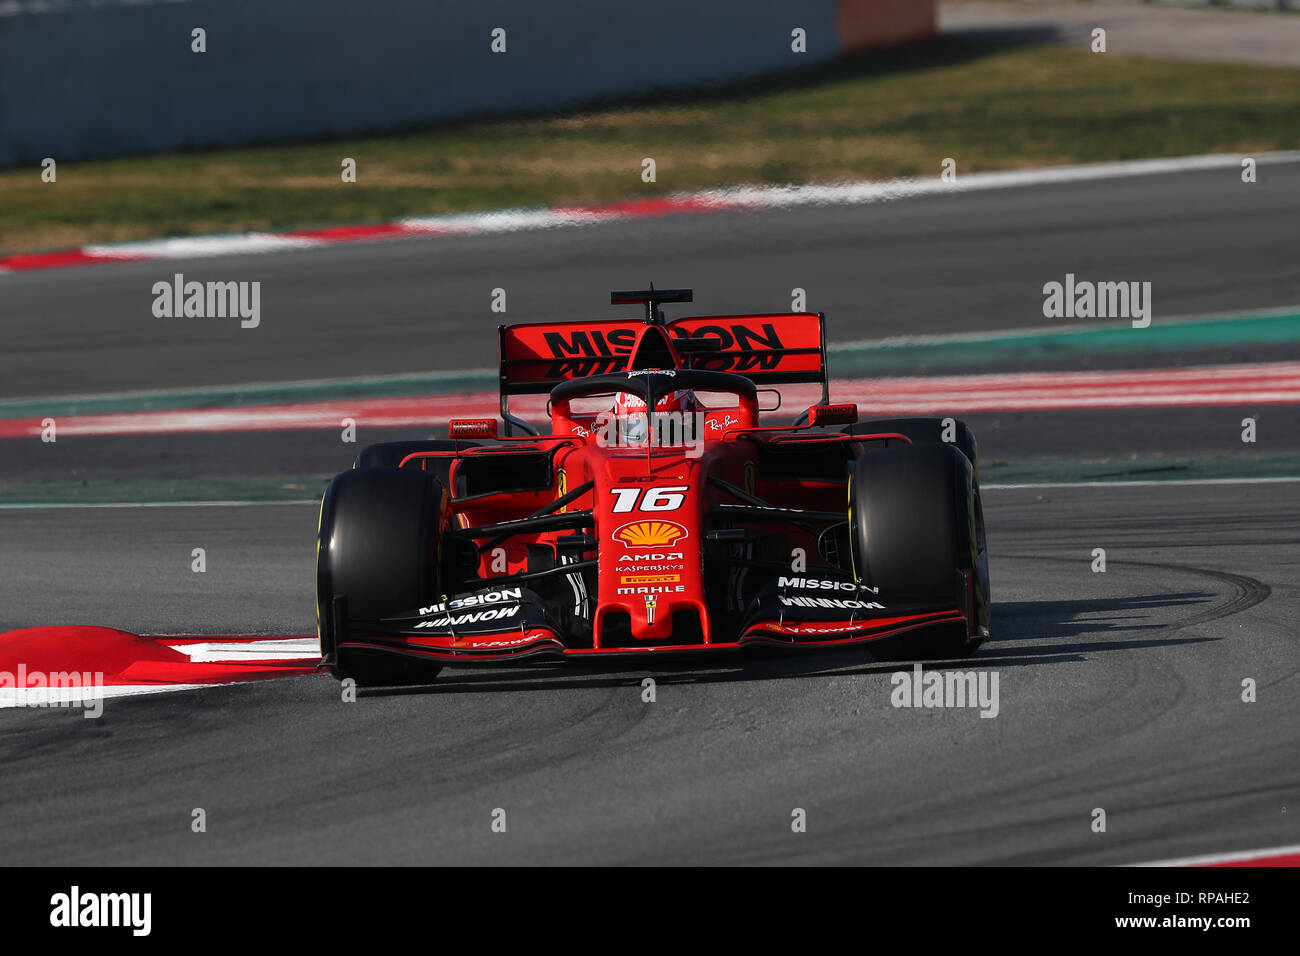 1b5f6f9bbcb38 Charles Leclerc Stock Photos   Charles Leclerc Stock Images - Alamy